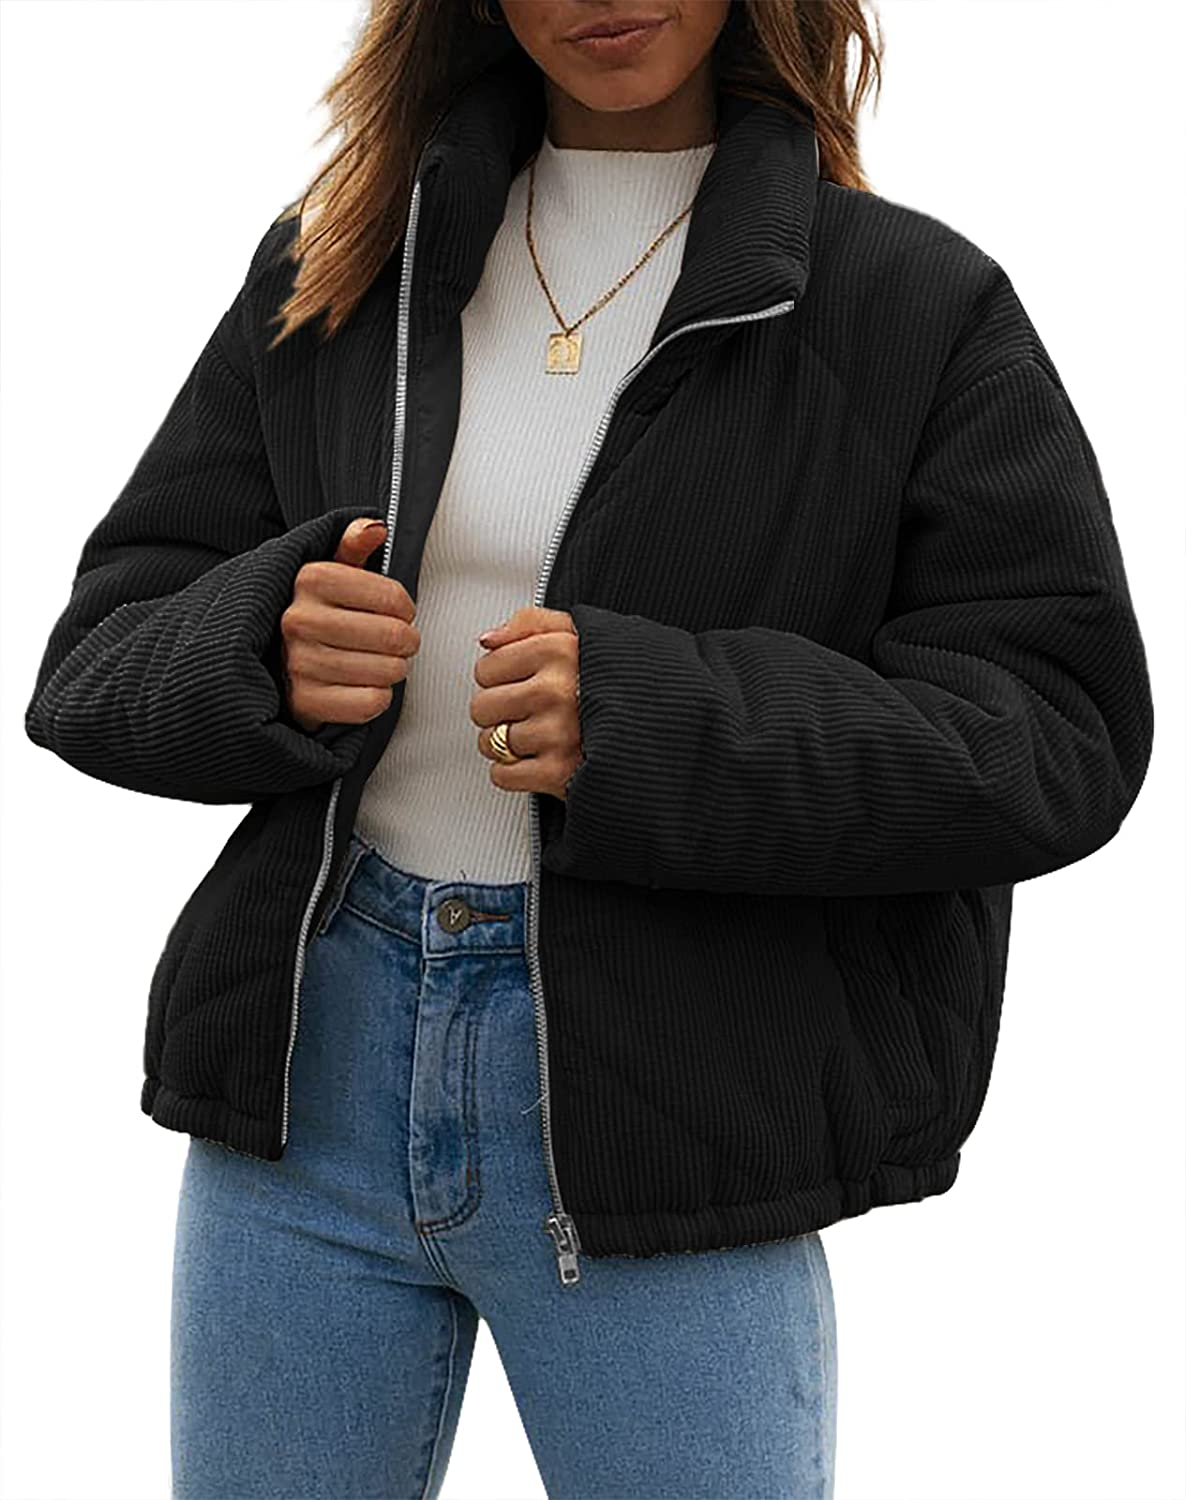 Womens Quilted Jacket Zip Up Long Sleeve Cozy Solid Color Comfortable Coat with Pockets